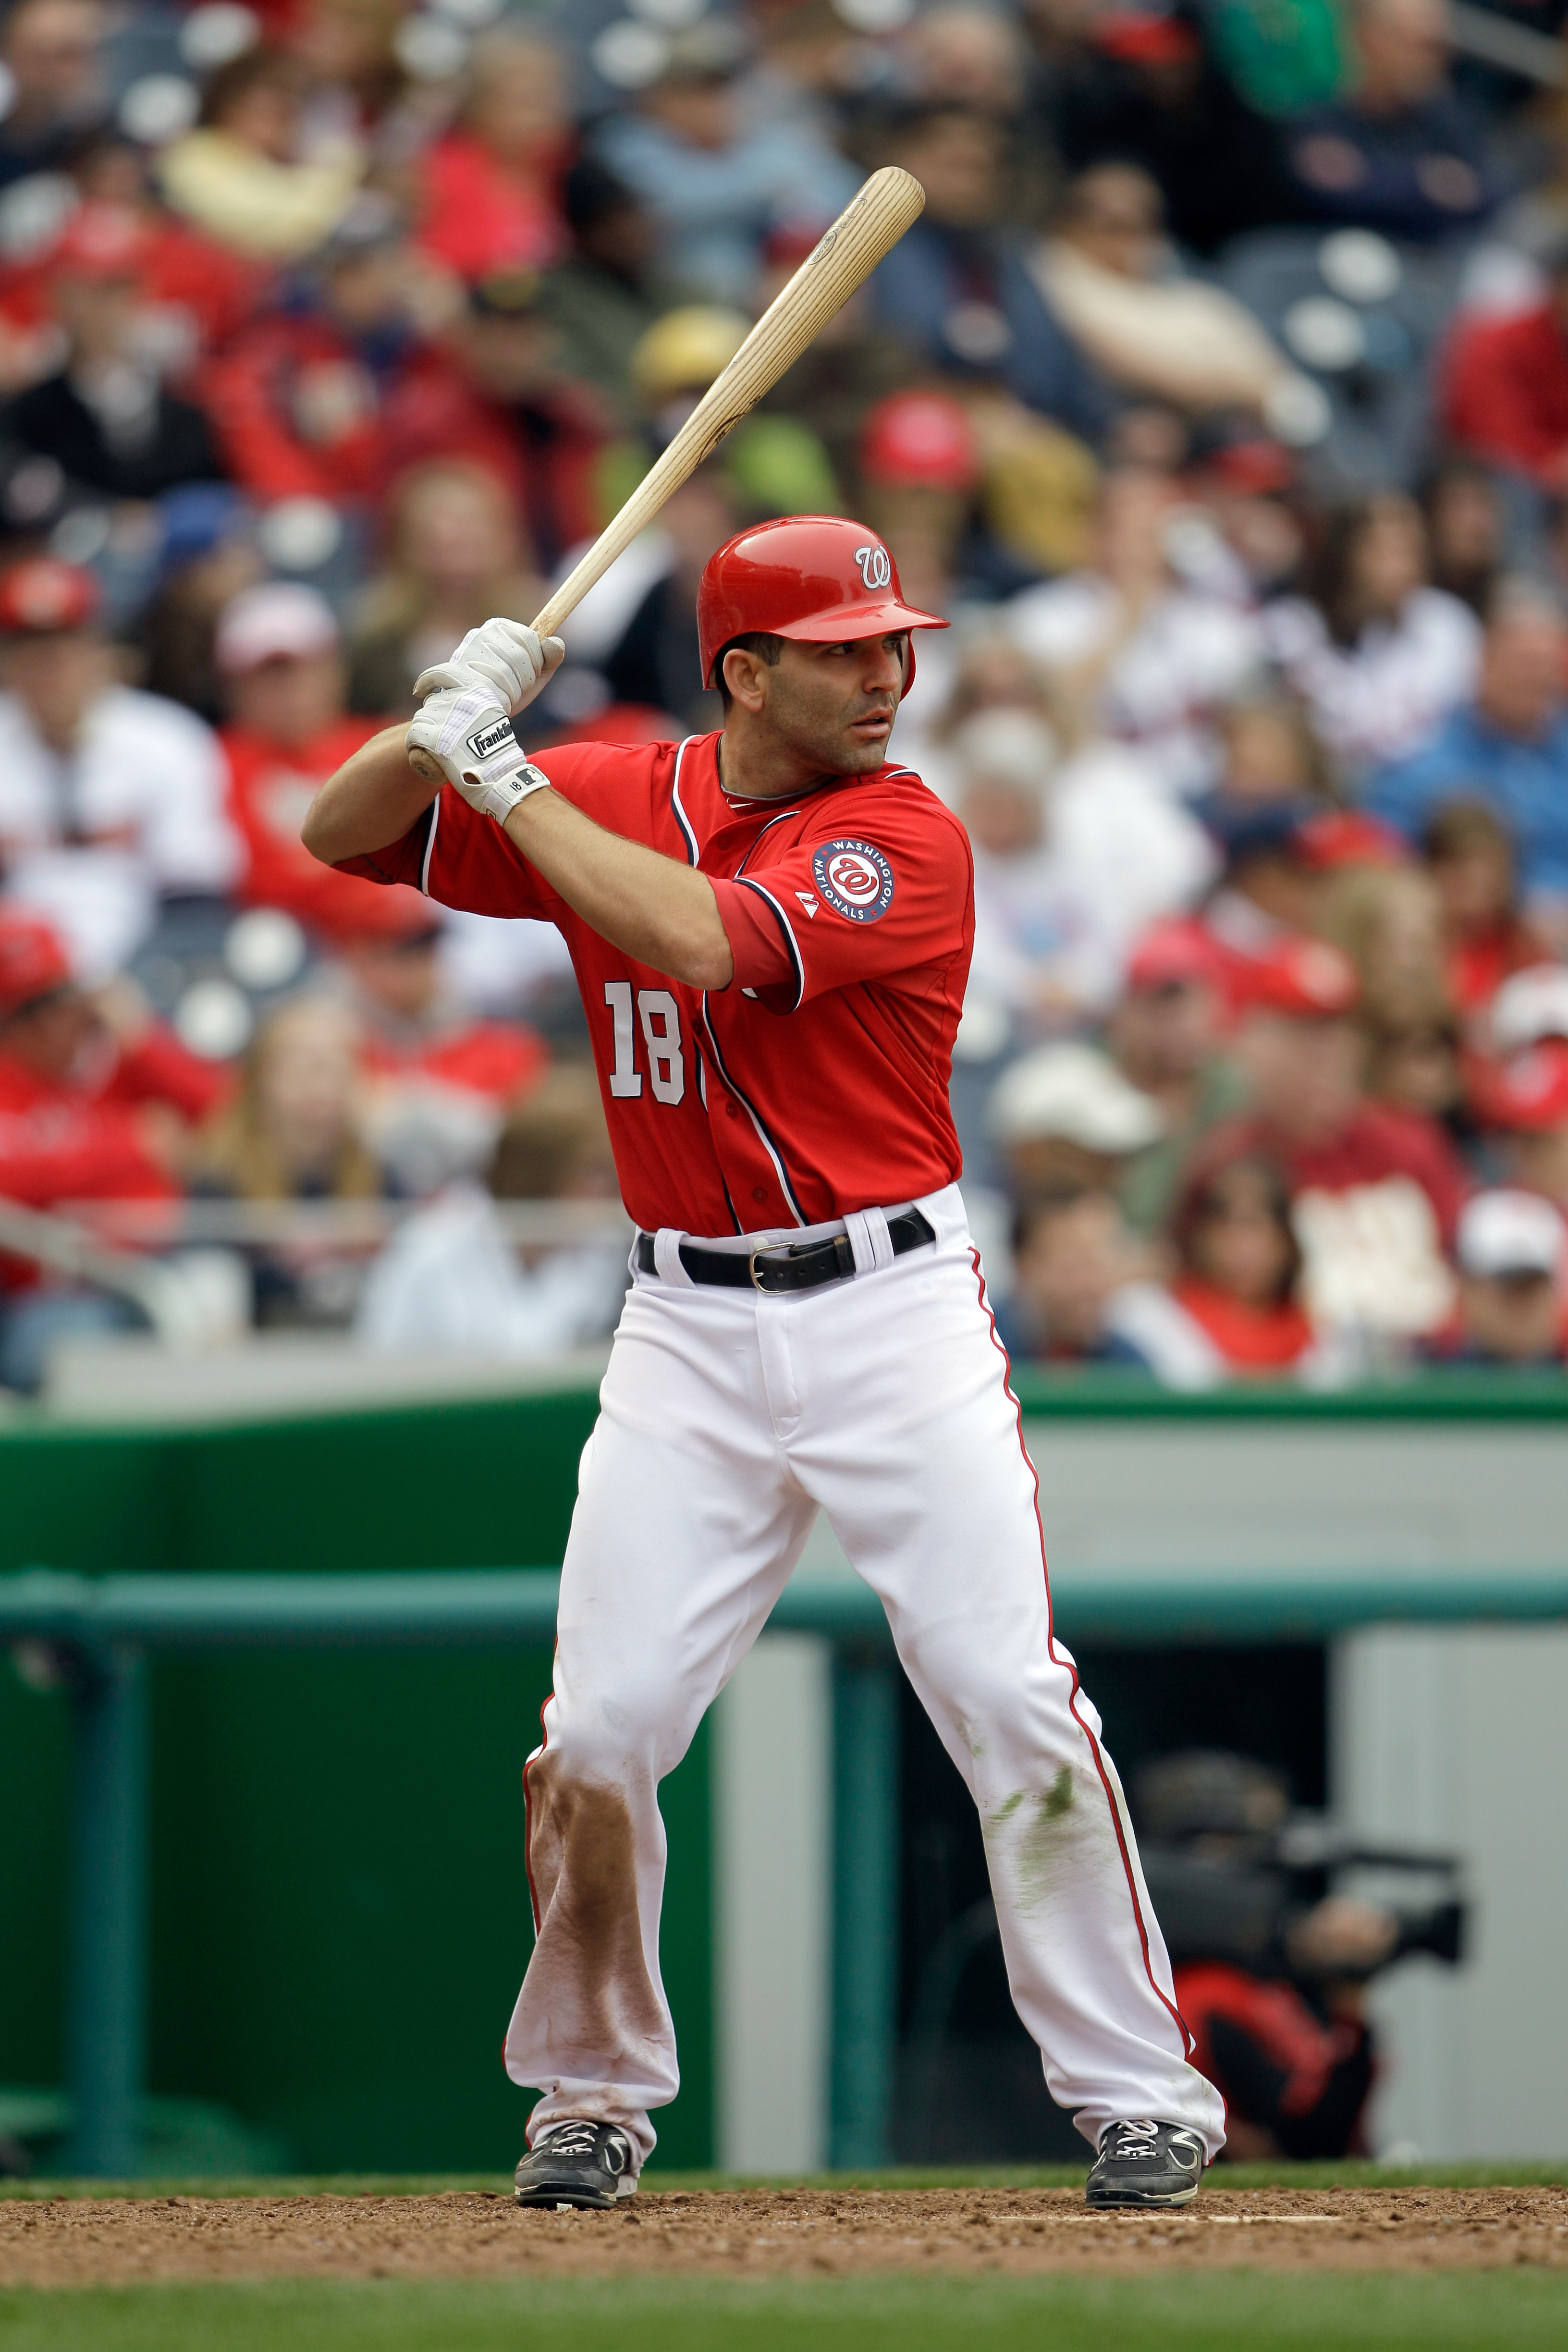 WASHINGTON, DC - APRIL 03: Danny Espinosa #18 of the Washington Nationals at the plate against the Atlanta Braves at Nationals Park on April 3, 2011 in Washington, DC.  (Photo by Rob Carr/Getty Images)